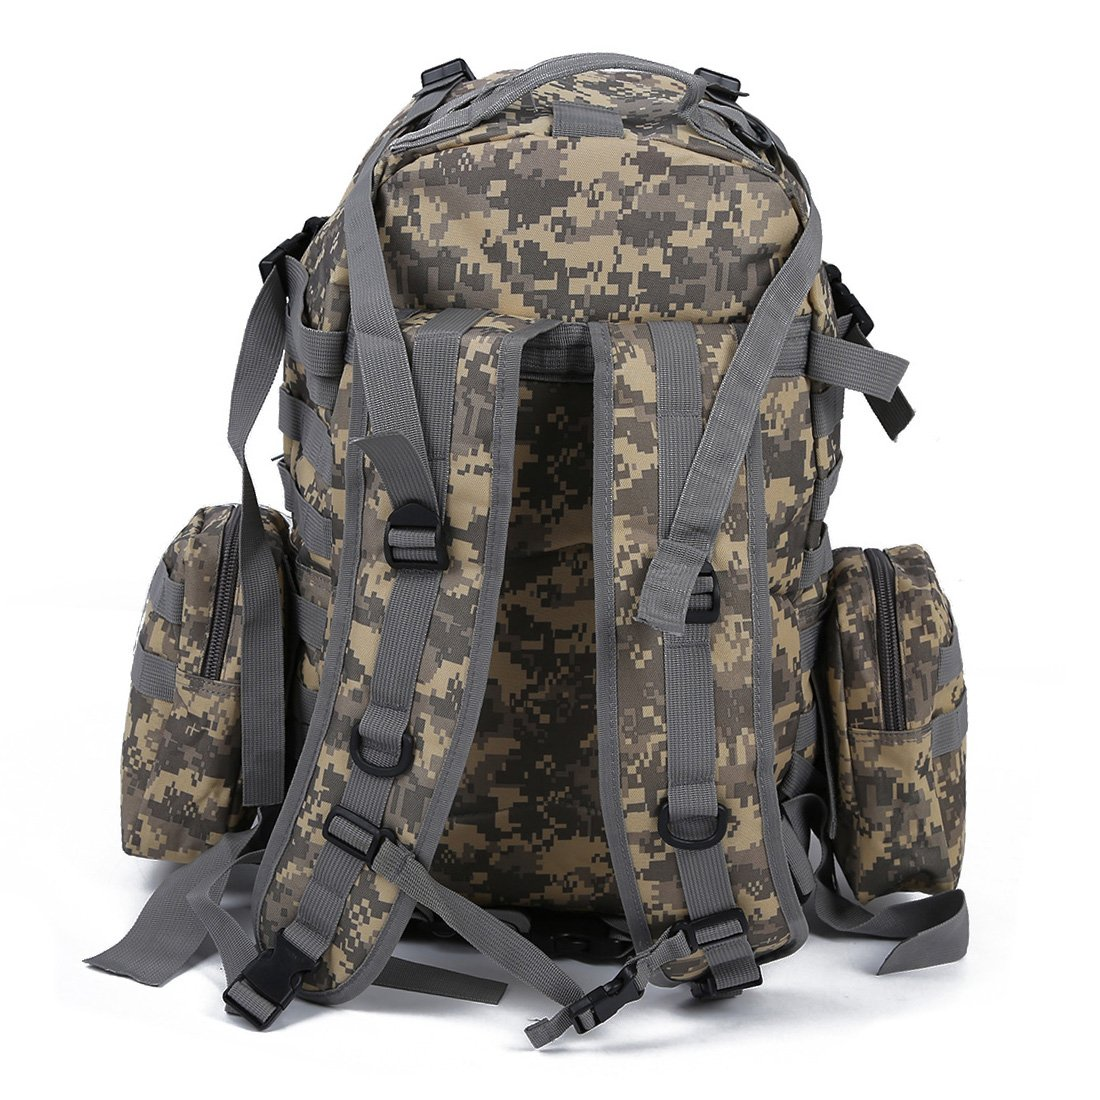 43856cf70840 Amazon.com   TOOGOO(R) 50 L 3 Day Assault Tactical Outdoor Military  Rucksacks Backpack Camping bag - AUC   Sports   Outdoors